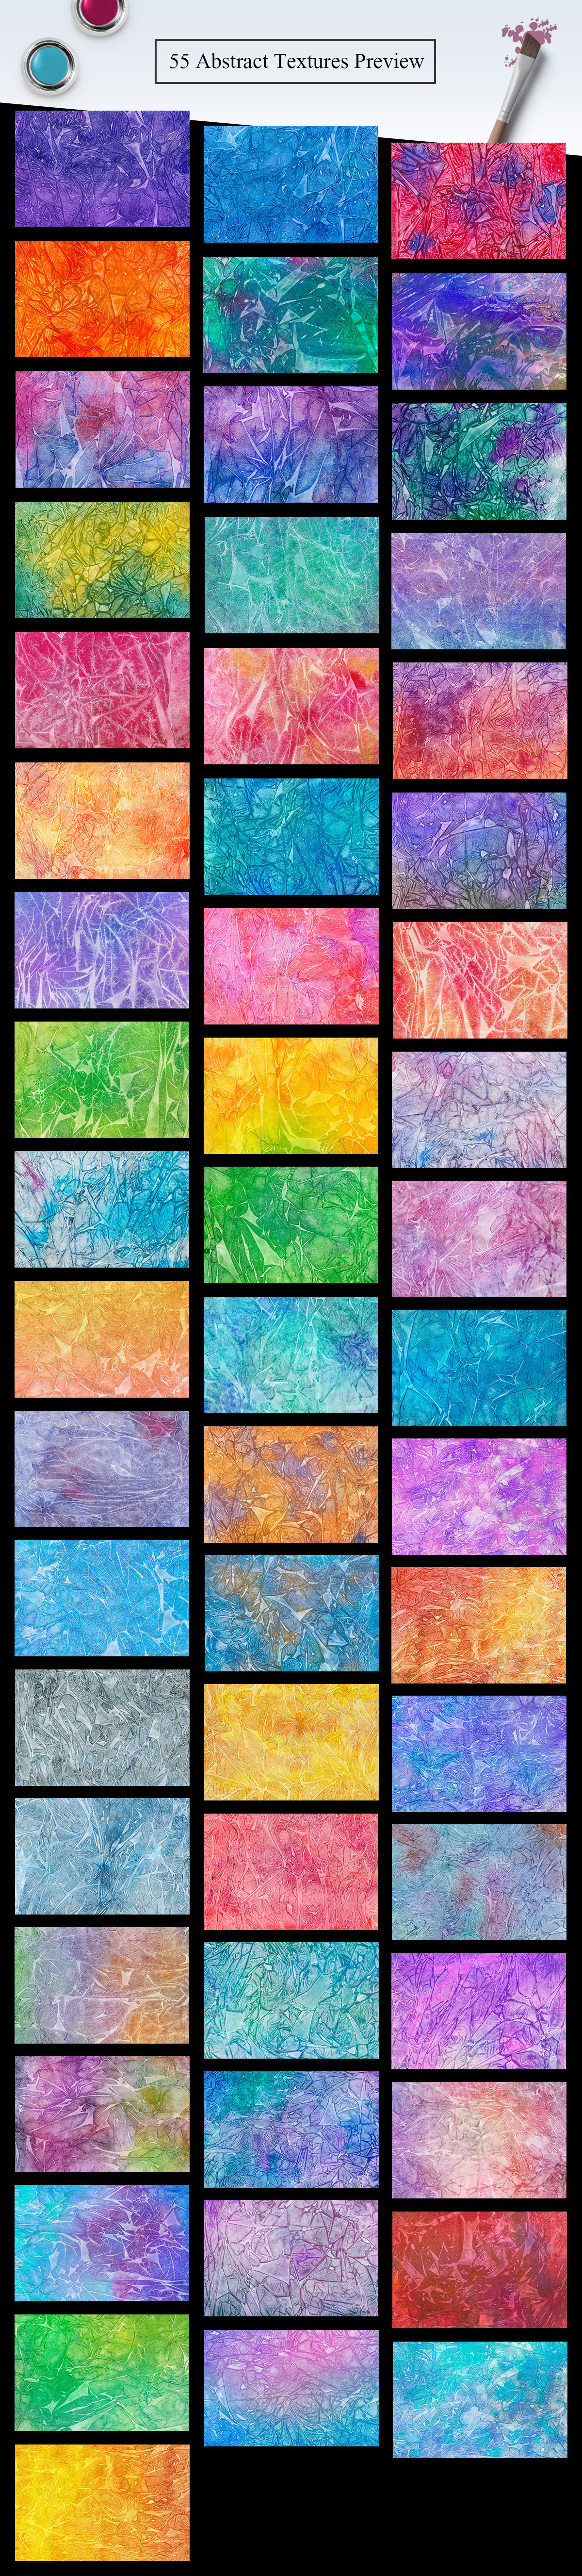 55 Watercolor Abstract Textures example image 2